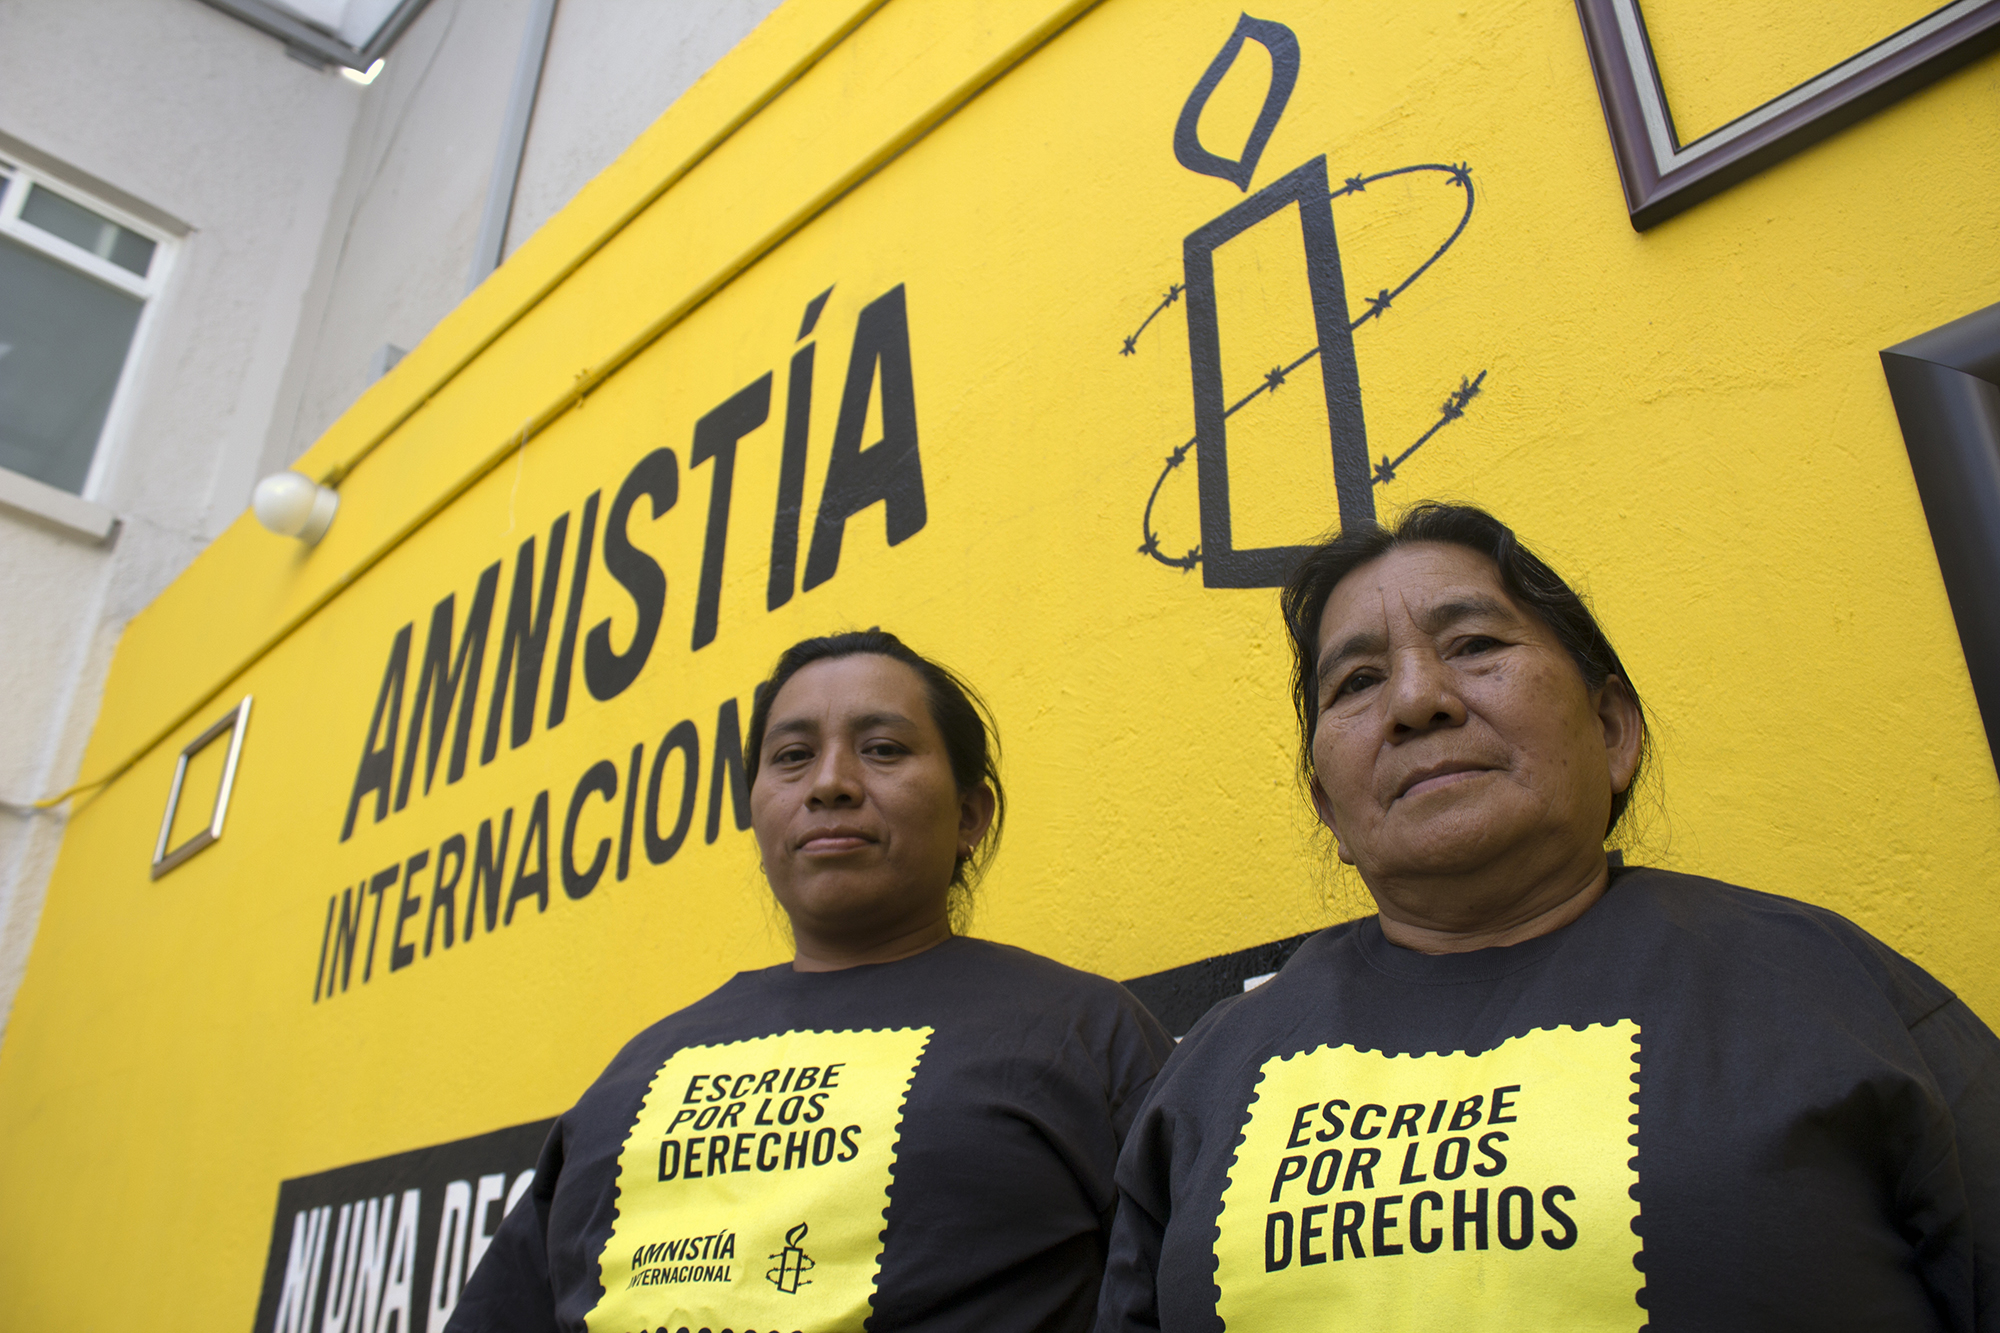 """Cecilia Vásquez Sánchez and María Elena Sánchez, Teodora Vásquez Sánchez's sister and mother, pose at Amnesty International's office in Mexico City. Both are wearing Amnesty International tee shirts. In 2008, Teodora del Carmen Vásquez was sentenced to 30 years in prison for """"aggravated homicide"""" after suffering a still-birth at work. Teodora, mother of an 11-year-old boy, was expecting a new baby when she started experiencing increasingly severe pain. She called the emergency services but her waters broke soon afterwards. She went into labour, and was unconscious when she gave birth. When she came round, bleeding profusely, her baby was dead. Police at the scene handcuffed her and arrested her on suspicion of murder. Only then did they take her to hospital where she could get the urgent treatment she needed. In El Salvador, women who miscarry or suffer a still-birth during pregnancy are routinely suspected of having had an """"abortion"""". Abortion under any circumstance is a crime, even in cases of rape, incest, or where a woman's life is at risk. This makes women afraid to seek help with pregnancy-related problems, leading inevitably to more preventable deaths."""